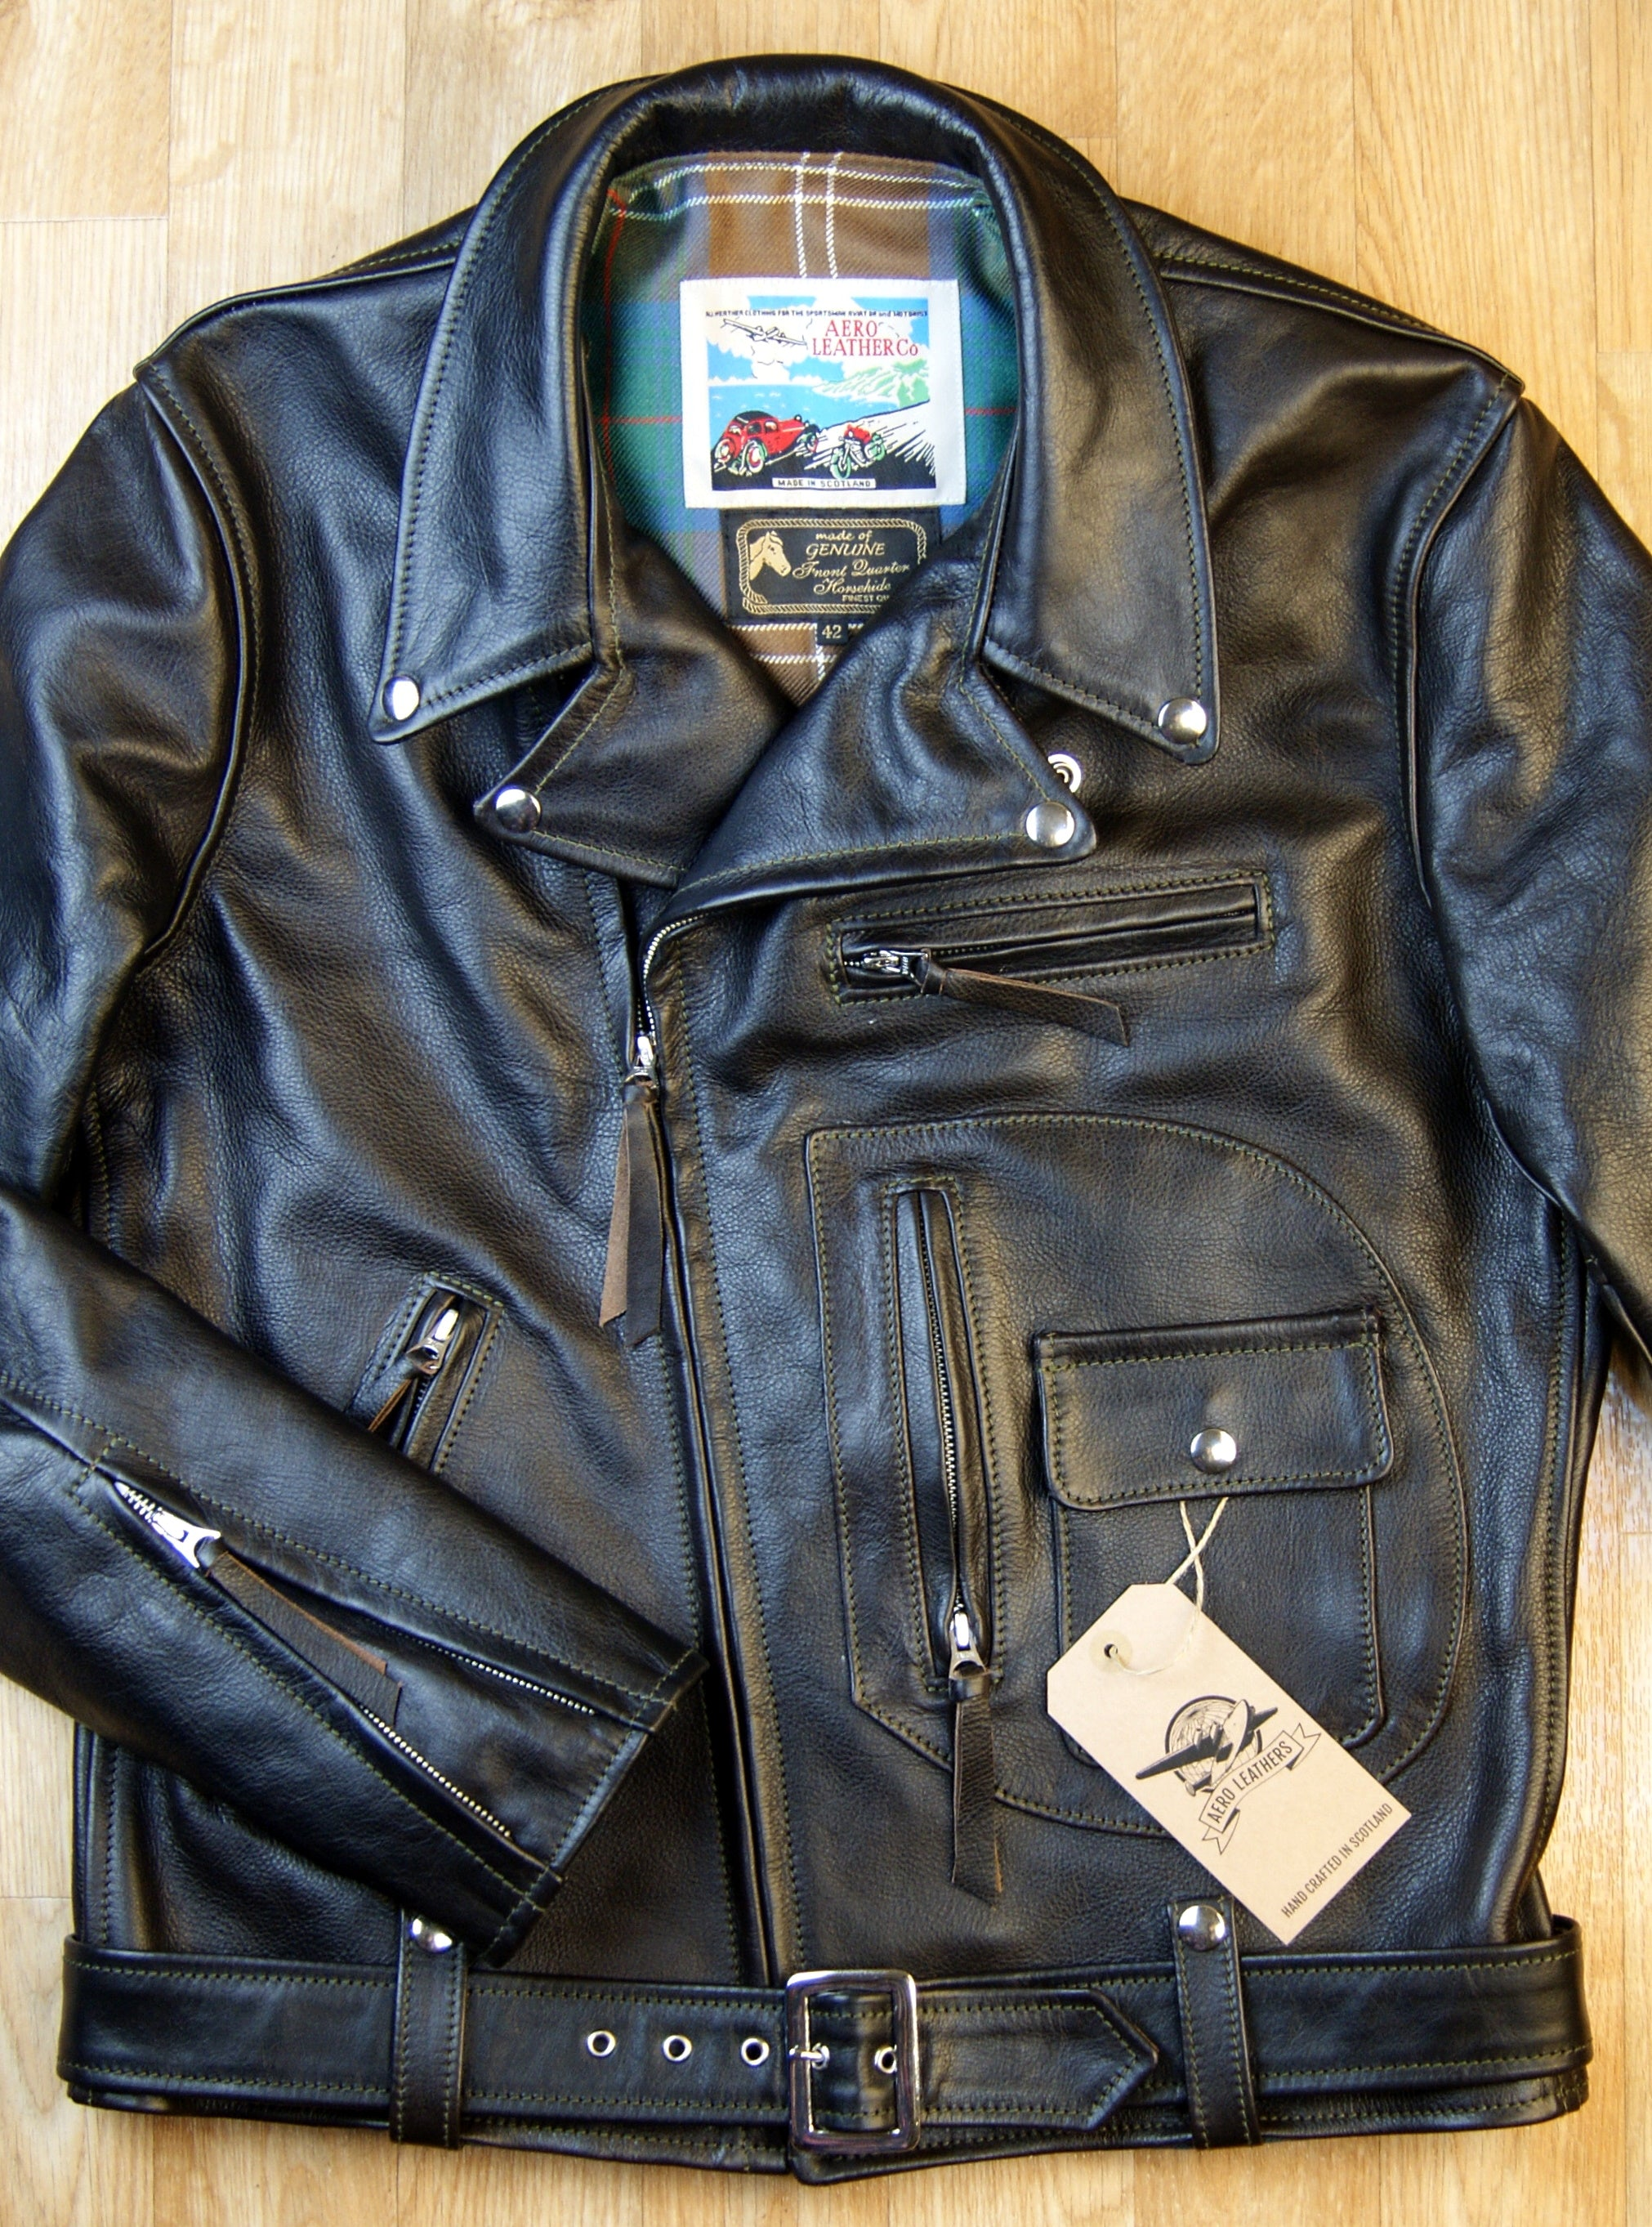 Aero D-Pocket Ridley, size 42, Blackened Brown Vicenza Horsehide